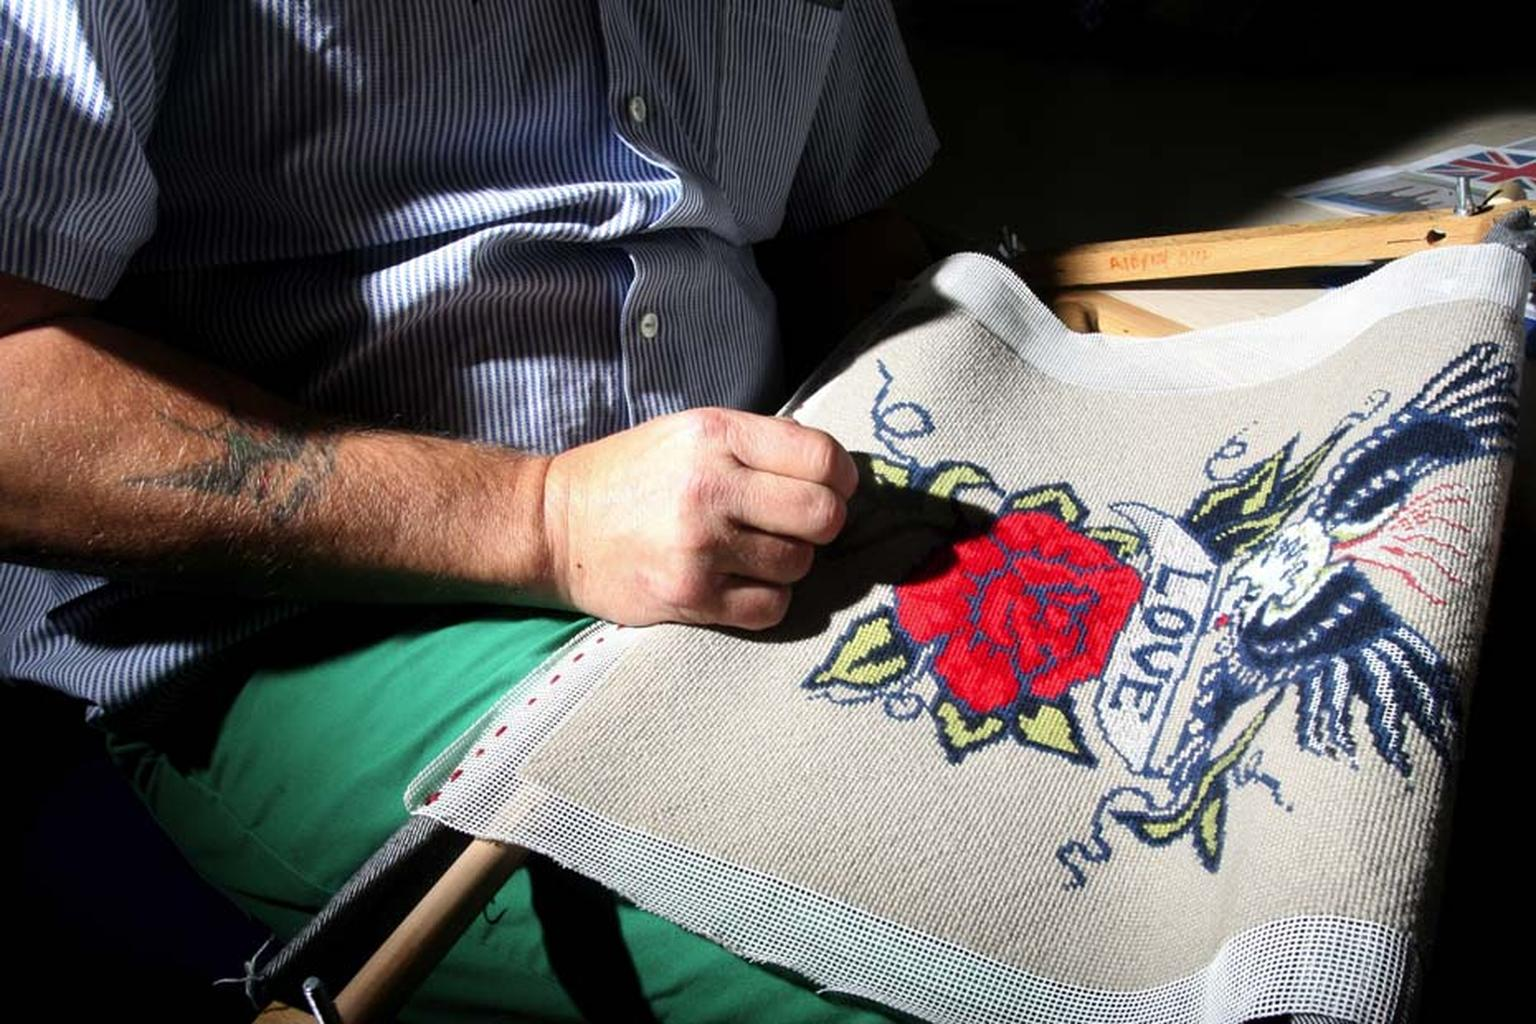 The Fine Cell Work charity teaches creative needlework to inmates; giving them the opportunity to earn money while also helping them cope with life in and out of prison.